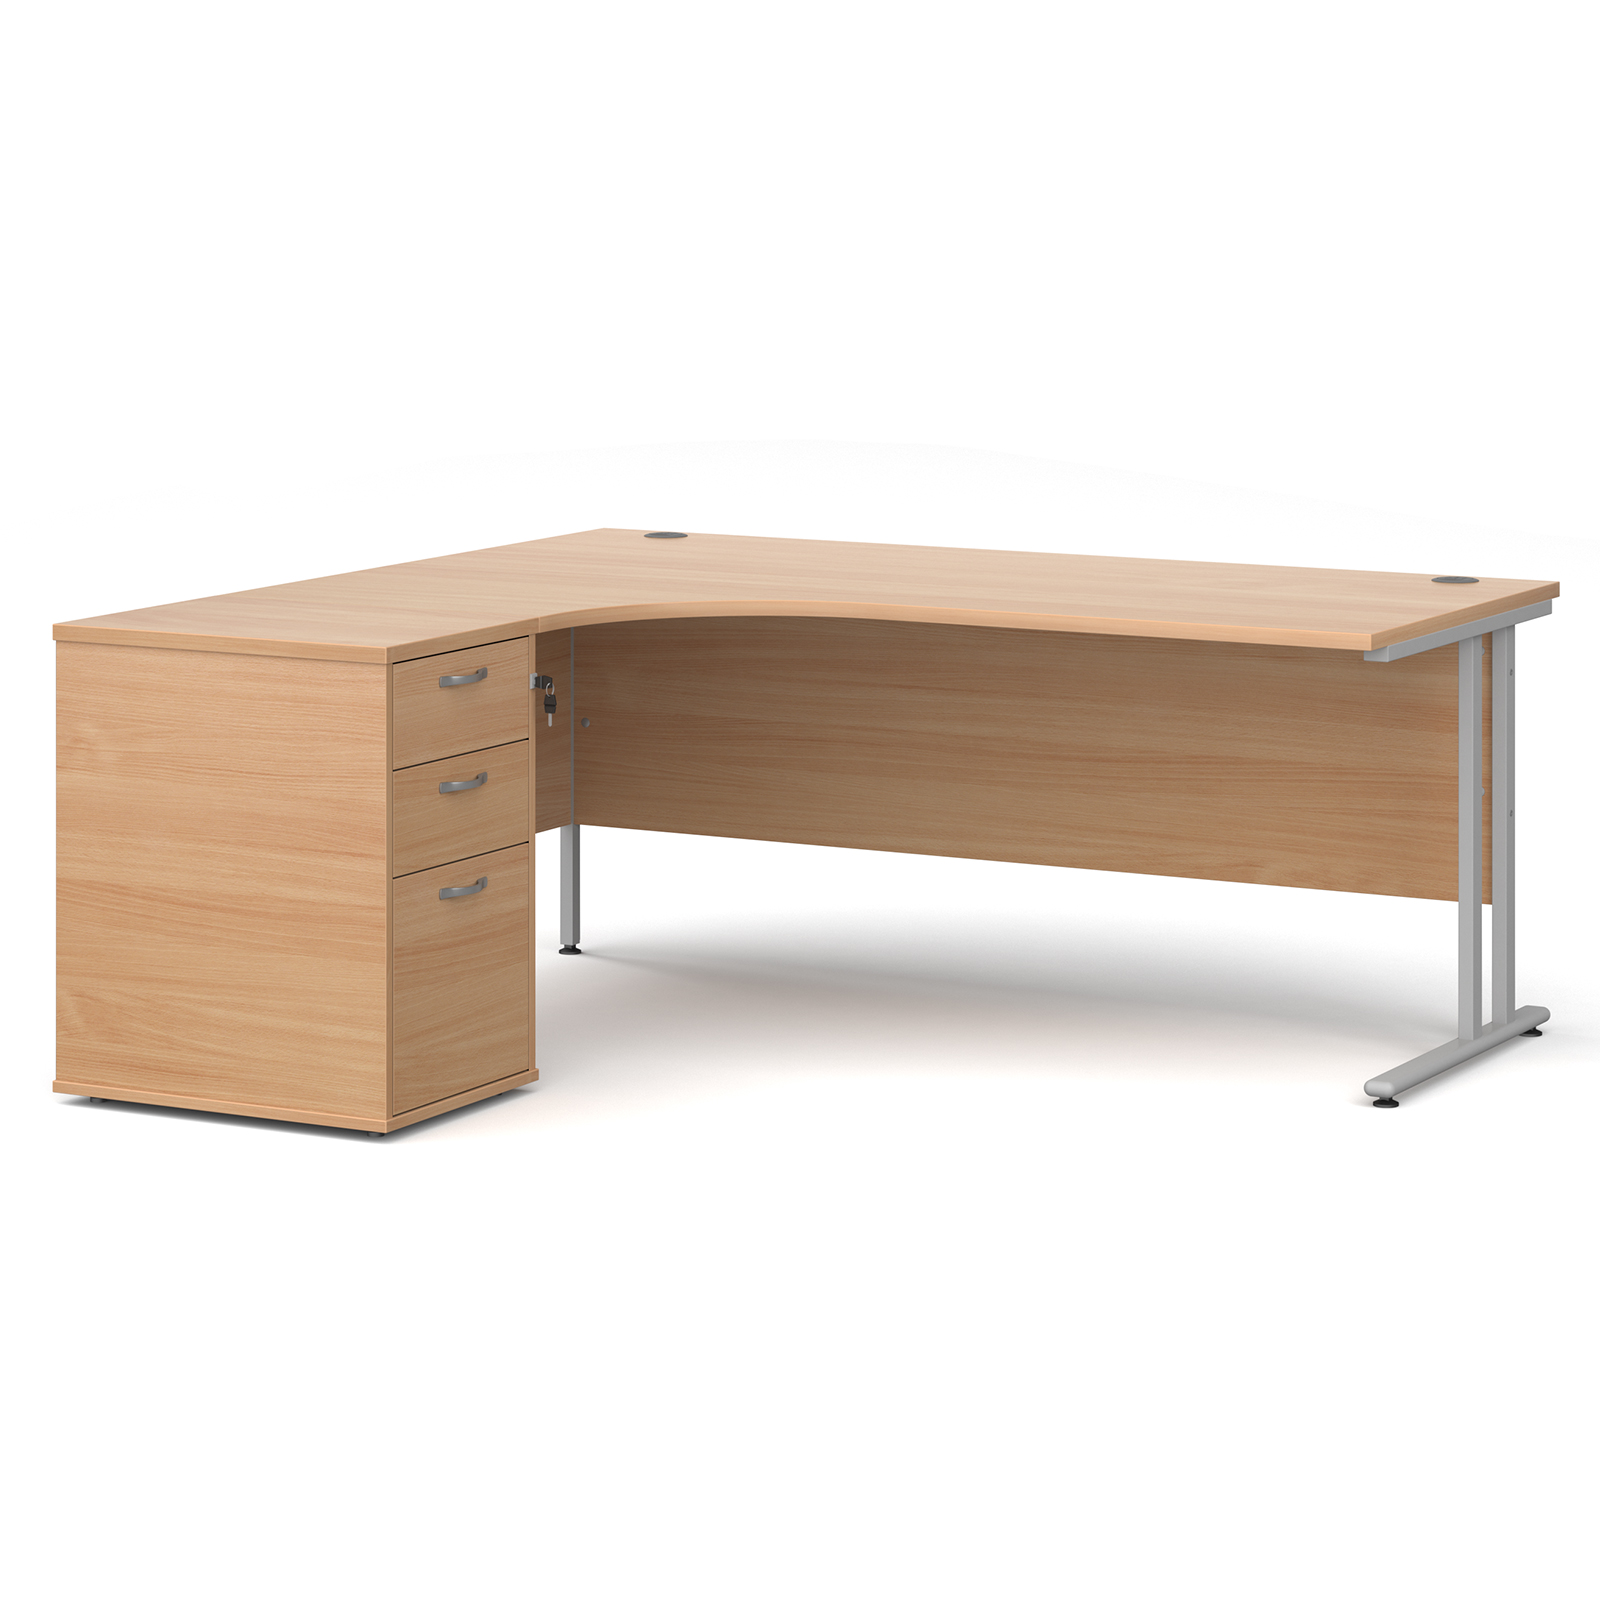 Left Handed Maestro 25 left hand ergonomic desk 1800mm with silver cantilever frame and desk high pedestal - beech